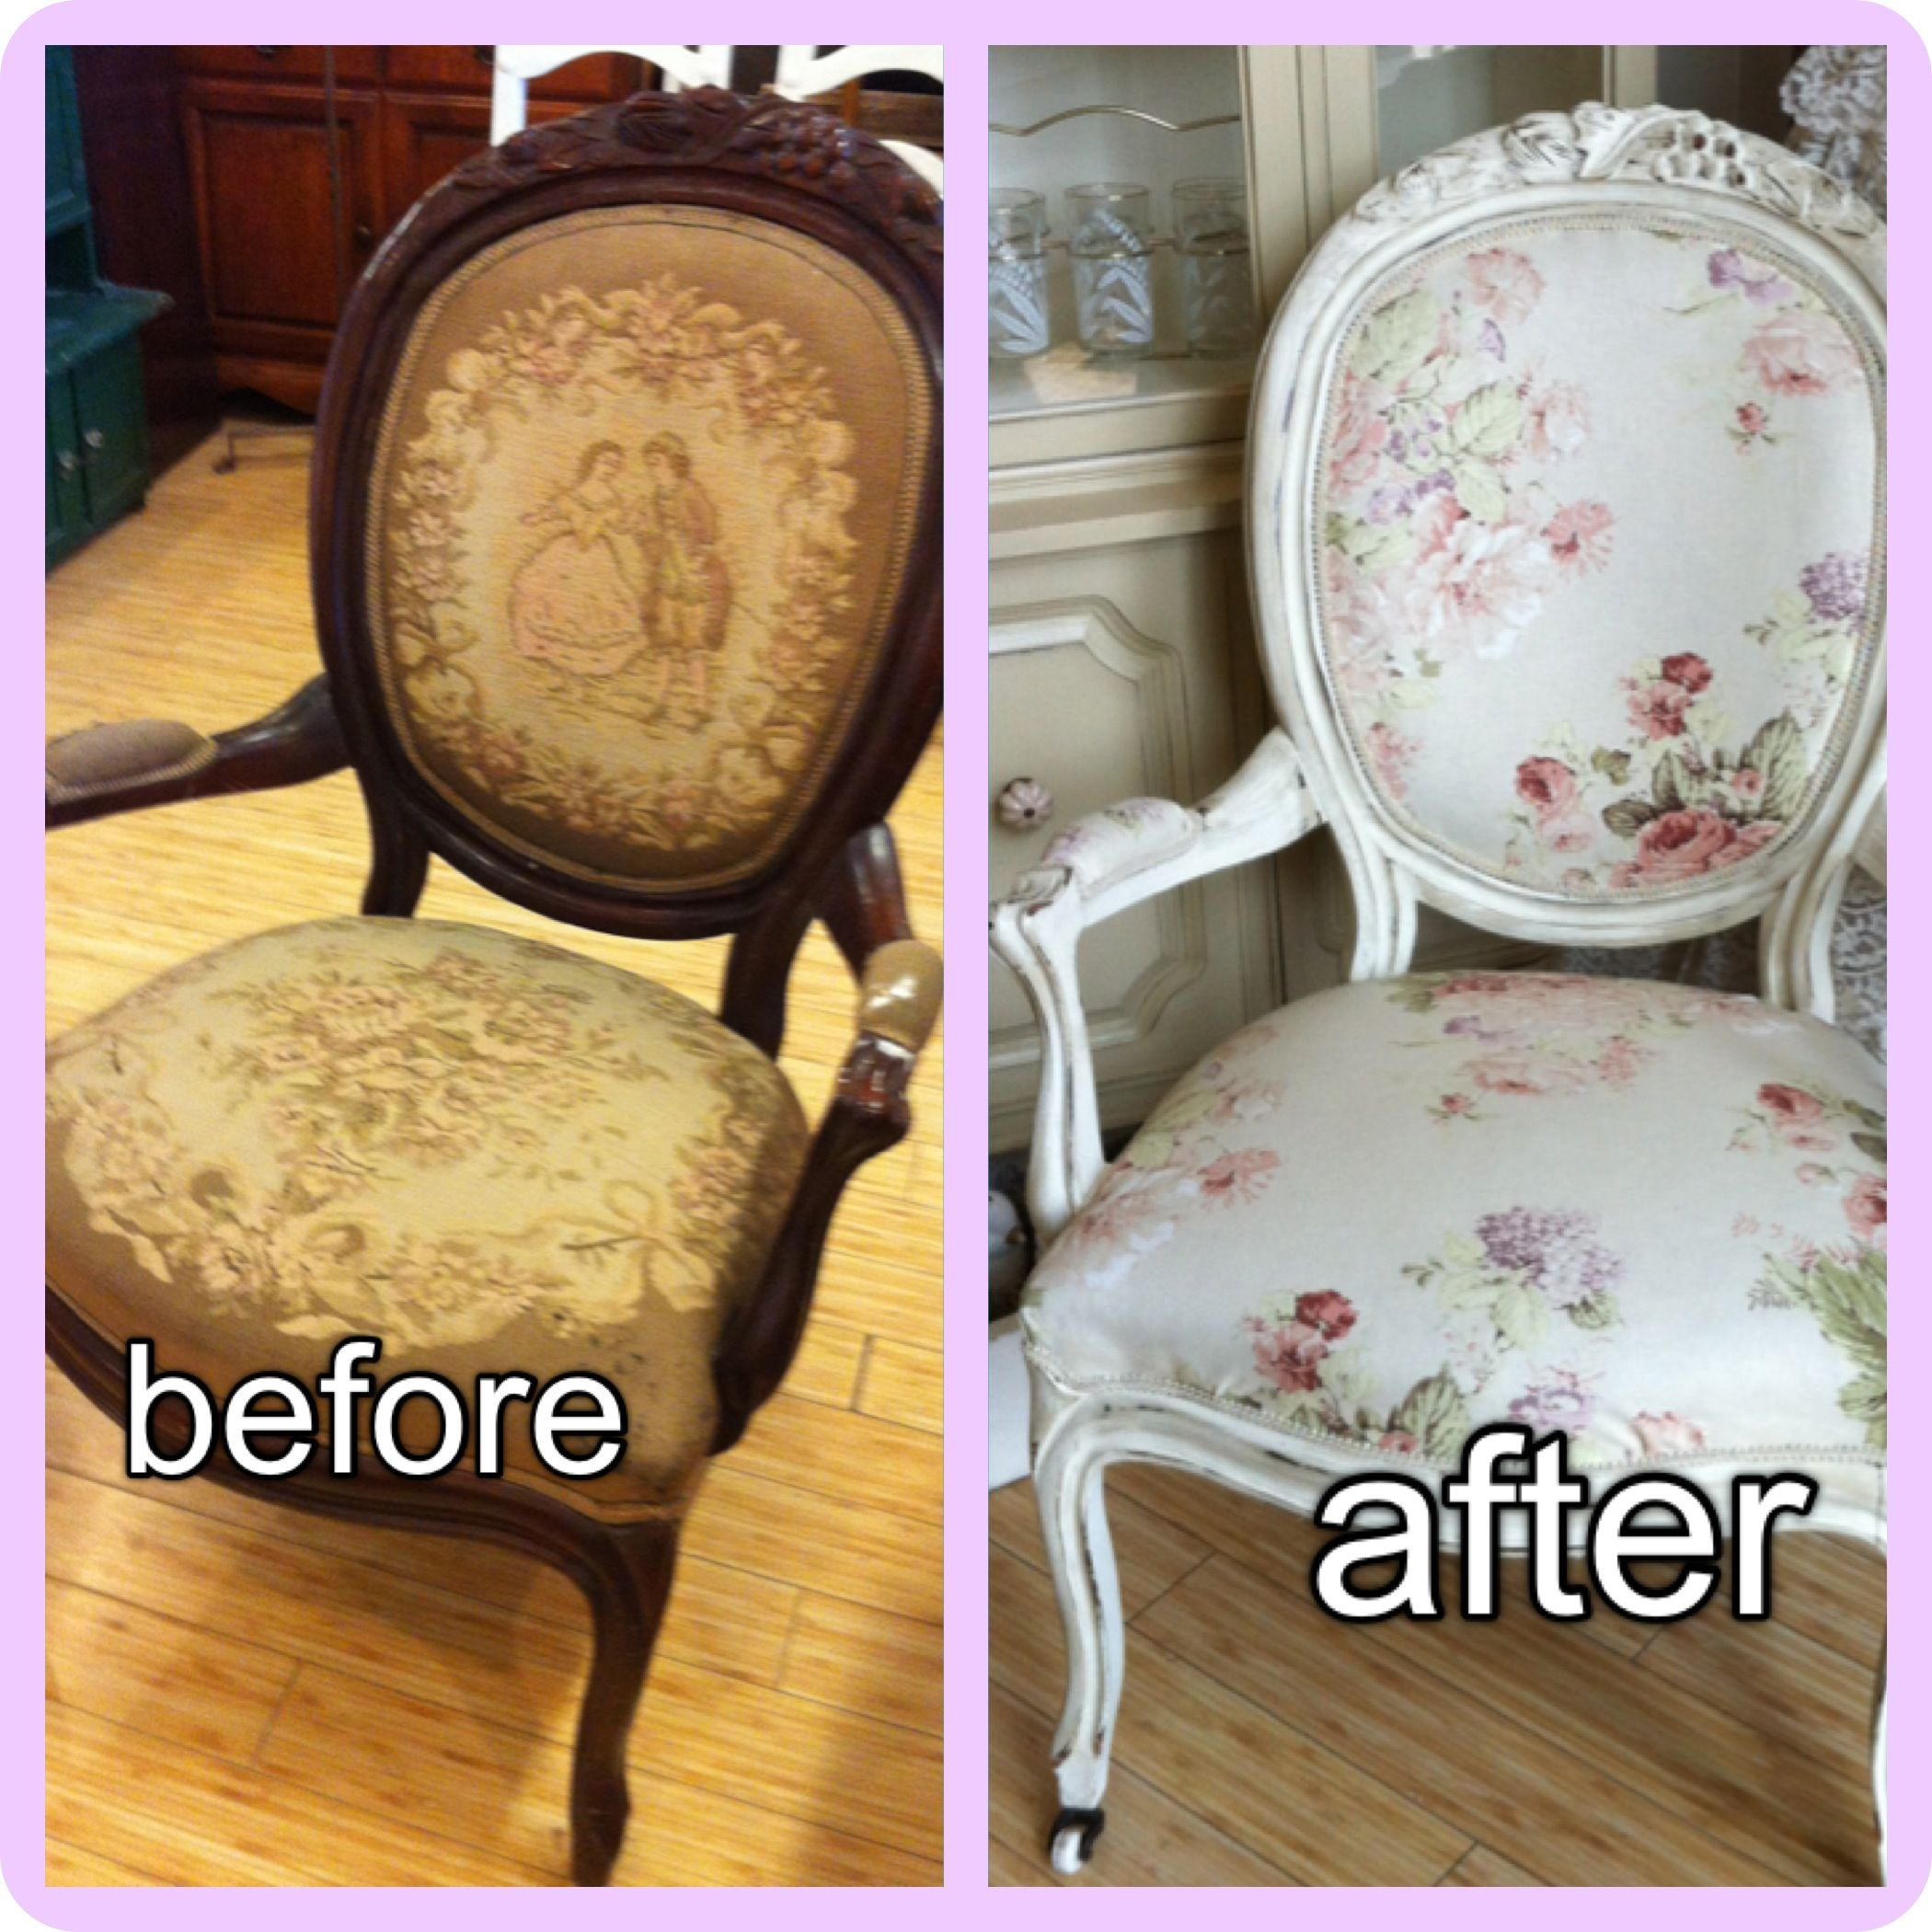 Antique Parlor Chairs Antique Parlor Chair Got A New Look With Country Grey And Old